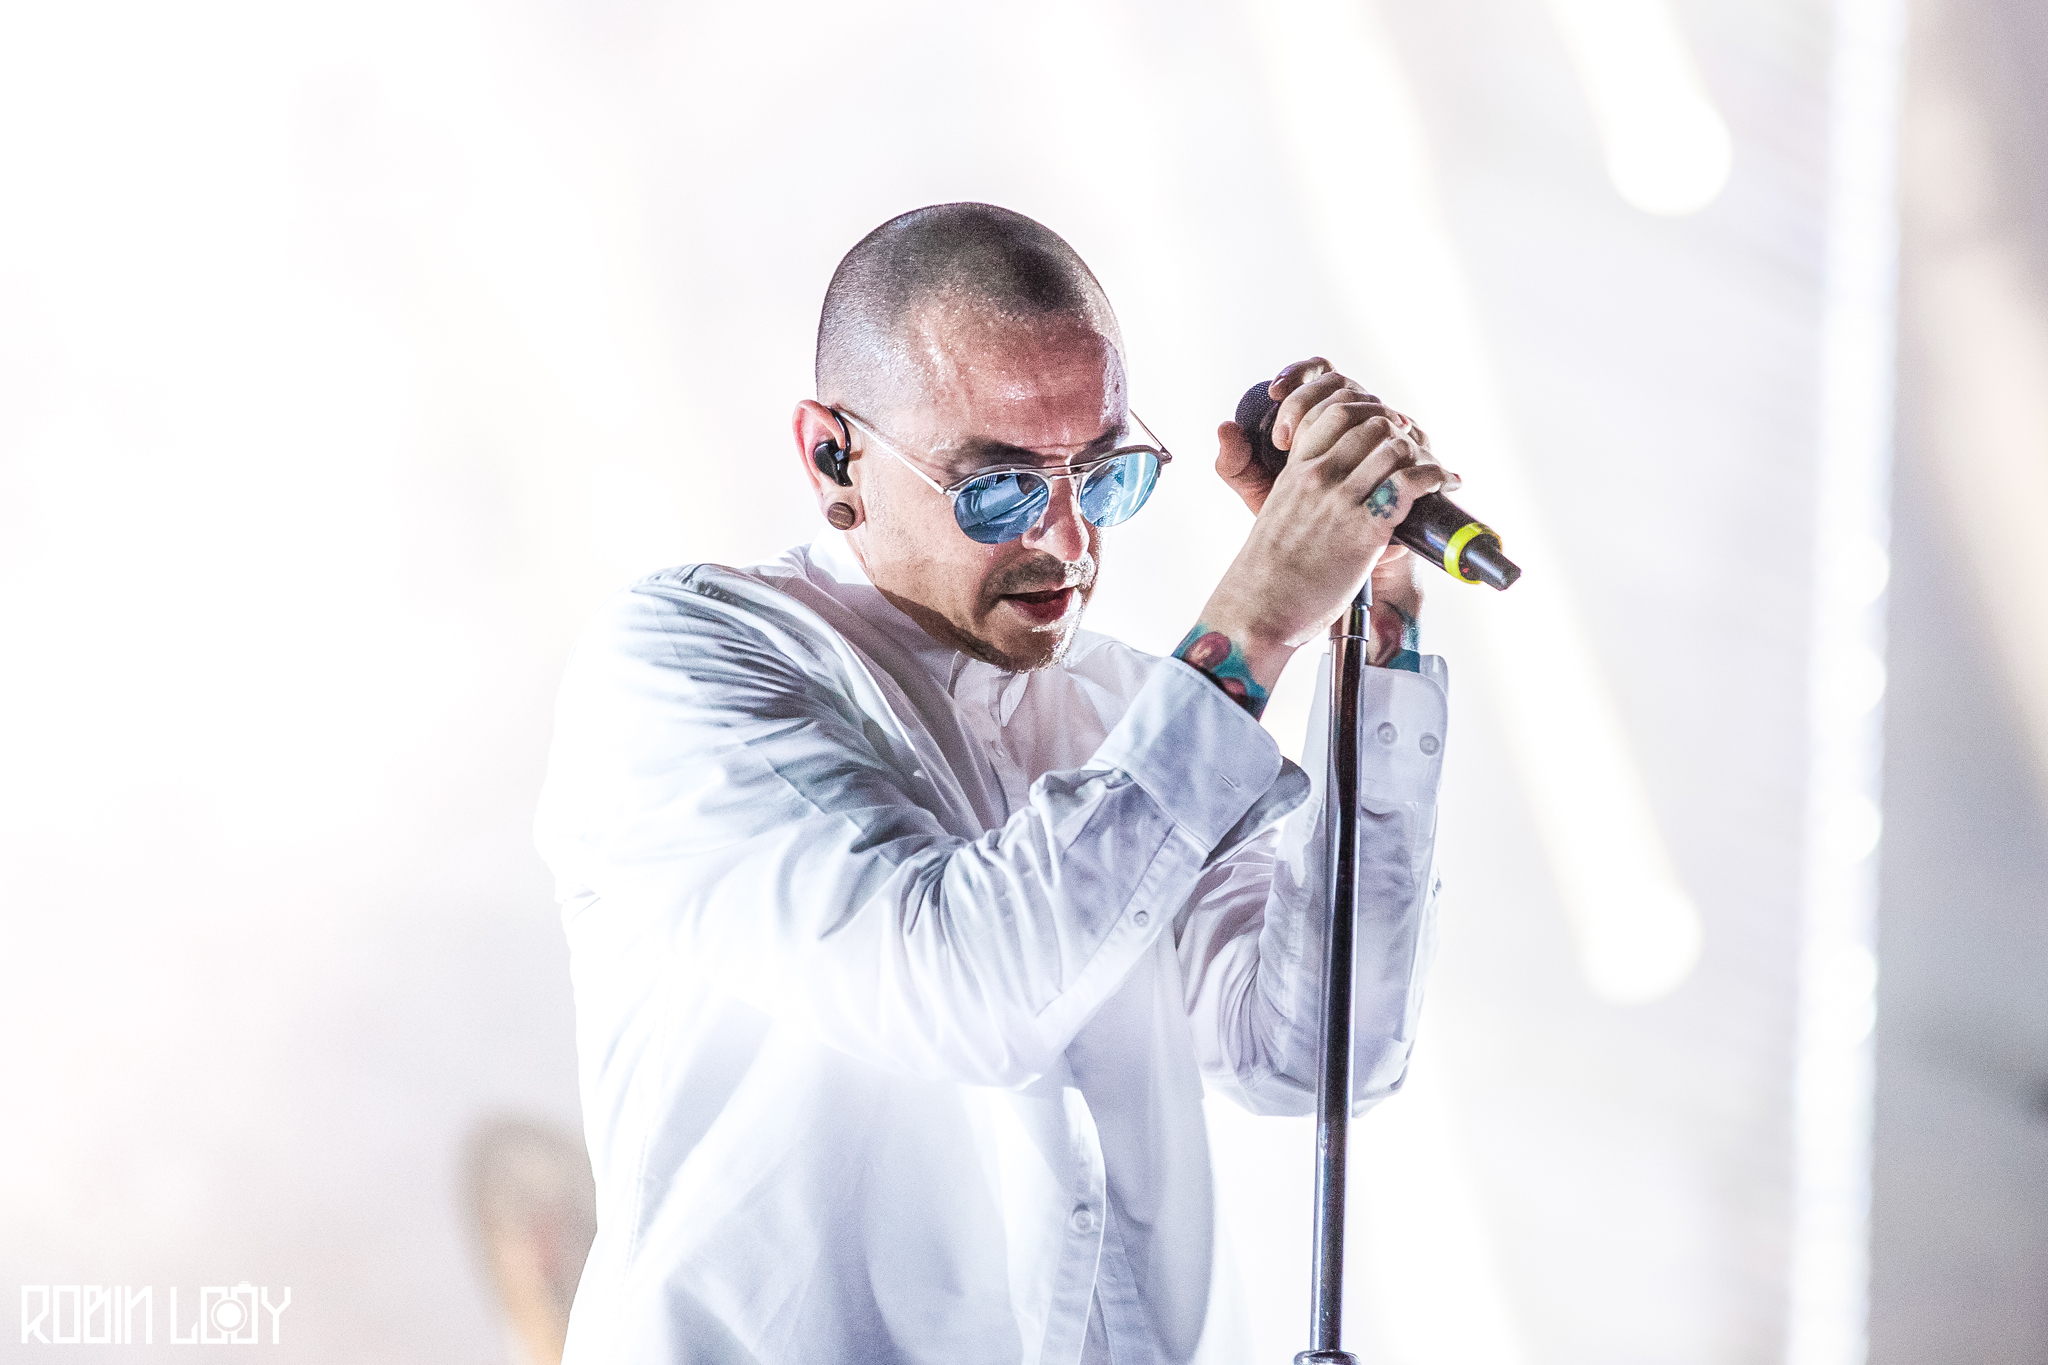 chester-bennington-linkin-park-zanger-overleden-foto-photo